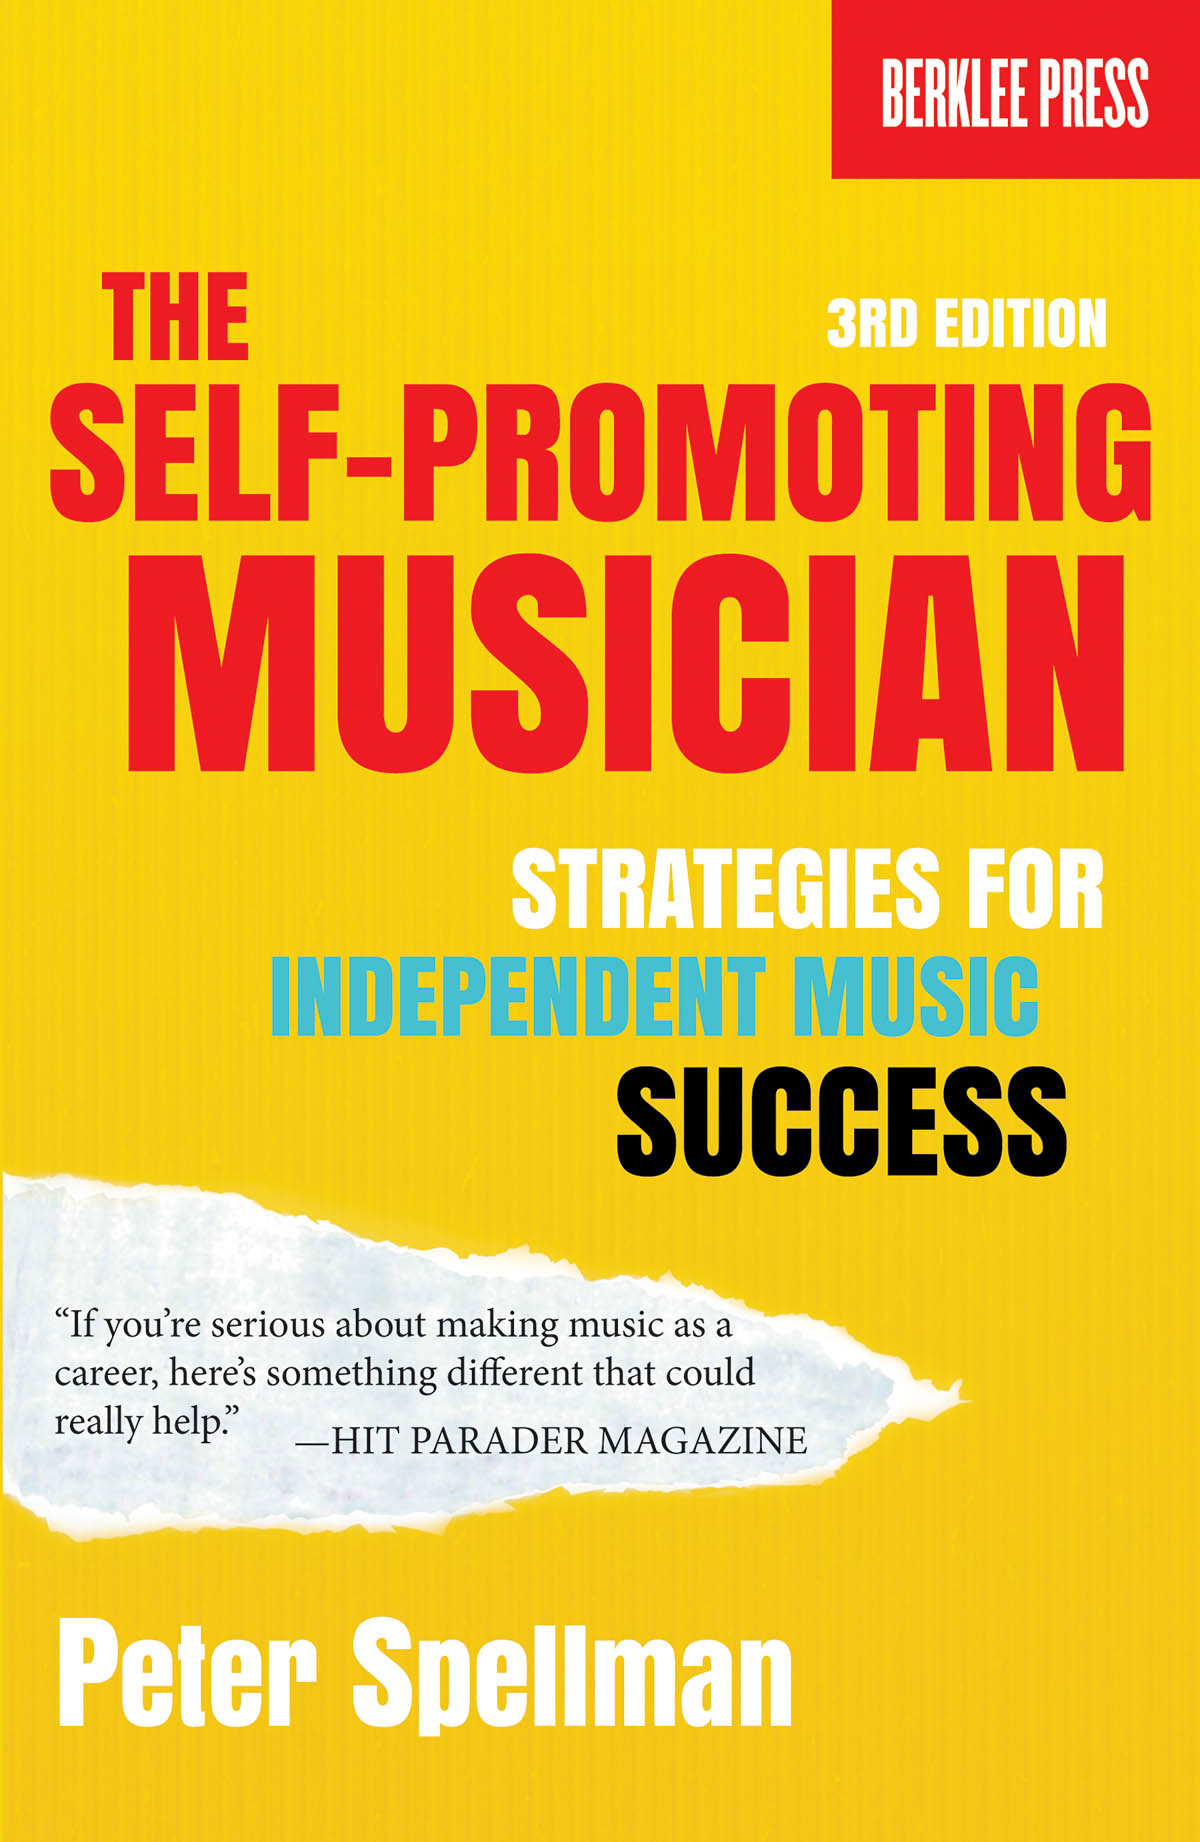 The Self-Promoting Musician: Reference Books: Reference